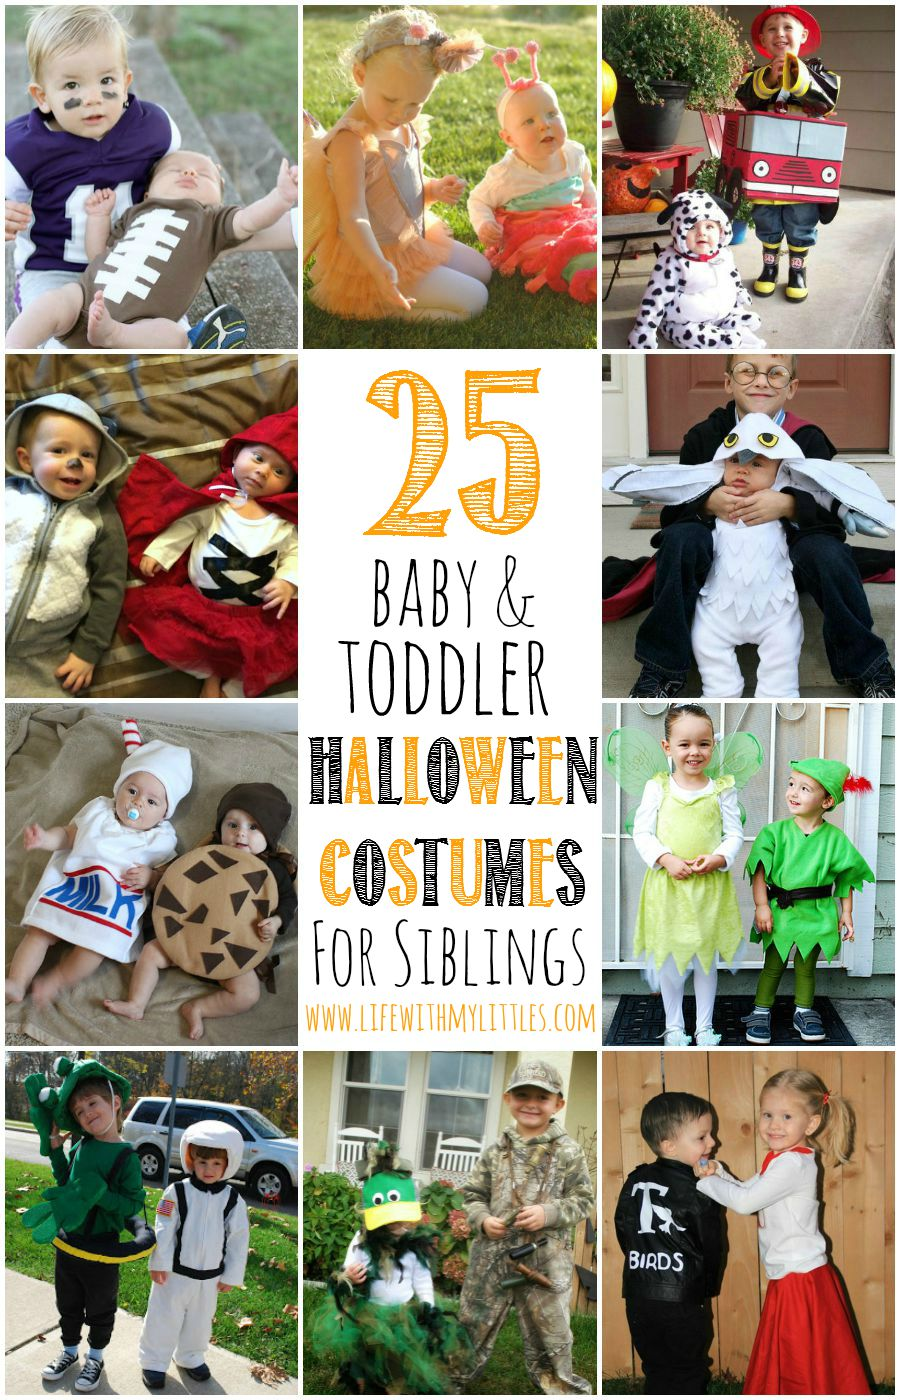 25 baby and toddler Halloween costumes for siblings. What a cute roundup of ideas!  sc 1 st  Life With My Littles & 25 Baby and Toddler Halloween Costumes for Siblings